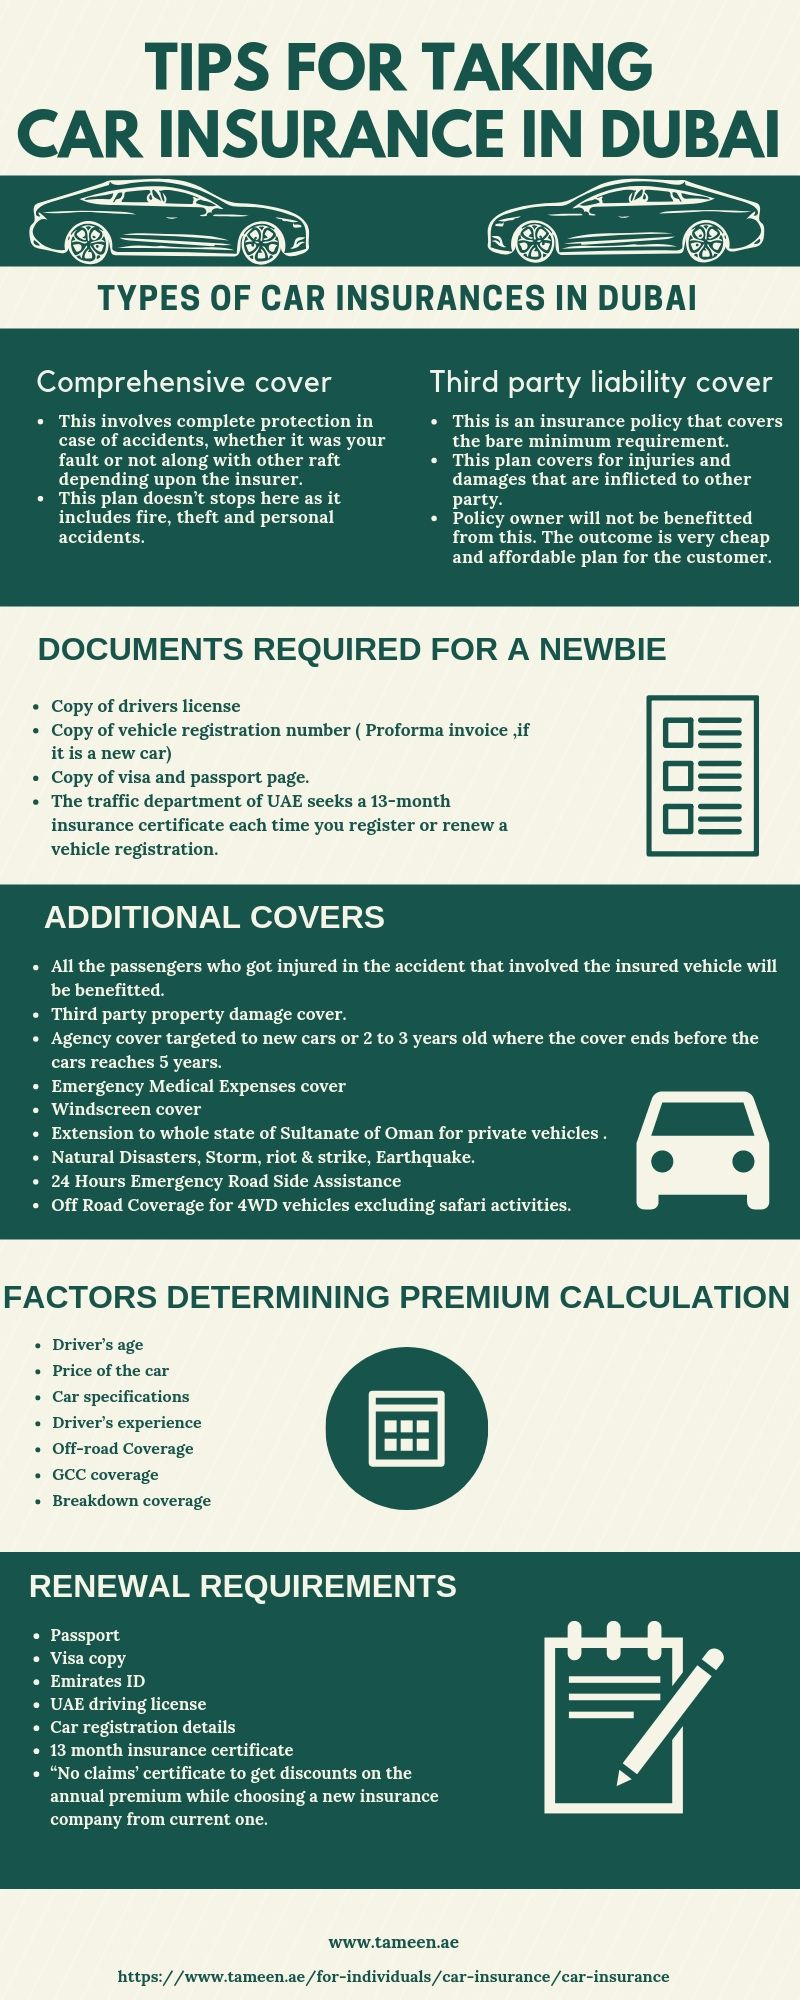 Here Are The Different Car Insurance Policies And Additional Covers In Dubai Along With The Documents Required For Car Insurance Insurance Marketing Insurance